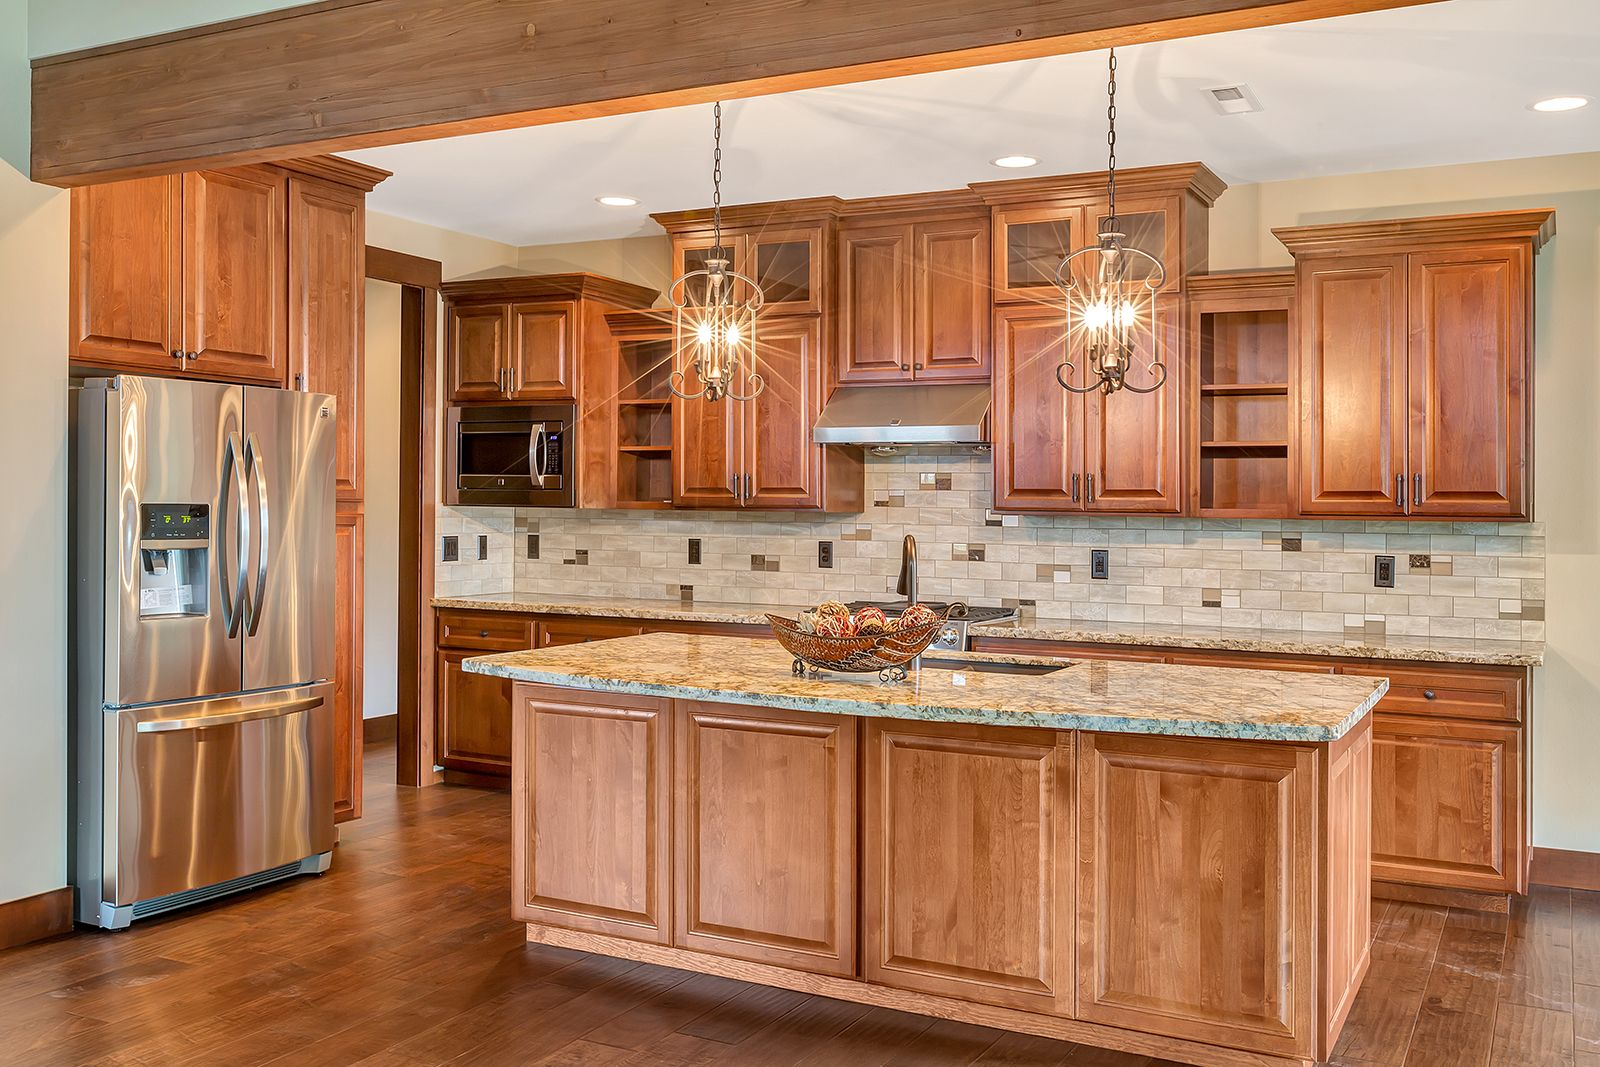 Stunning Craftsman Style Kitchen Alder Cabinets With Raised Panel Doors And Drawer Kitchen Cabinet Door Styles Alder Kitchen Cabinets Custom Kitchen Cabinets